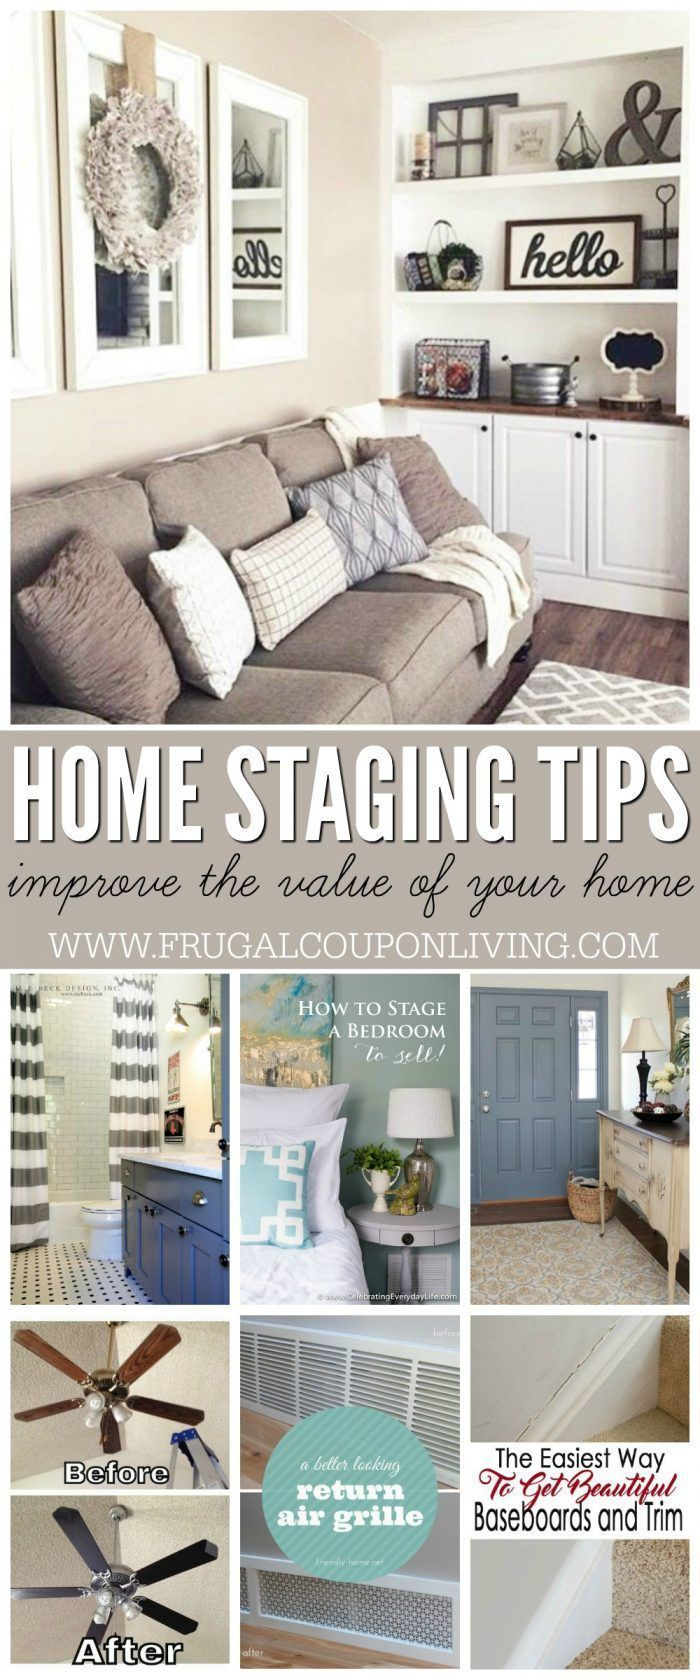 25 Best Ideas about Home Staging Tips on PinterestHomes for